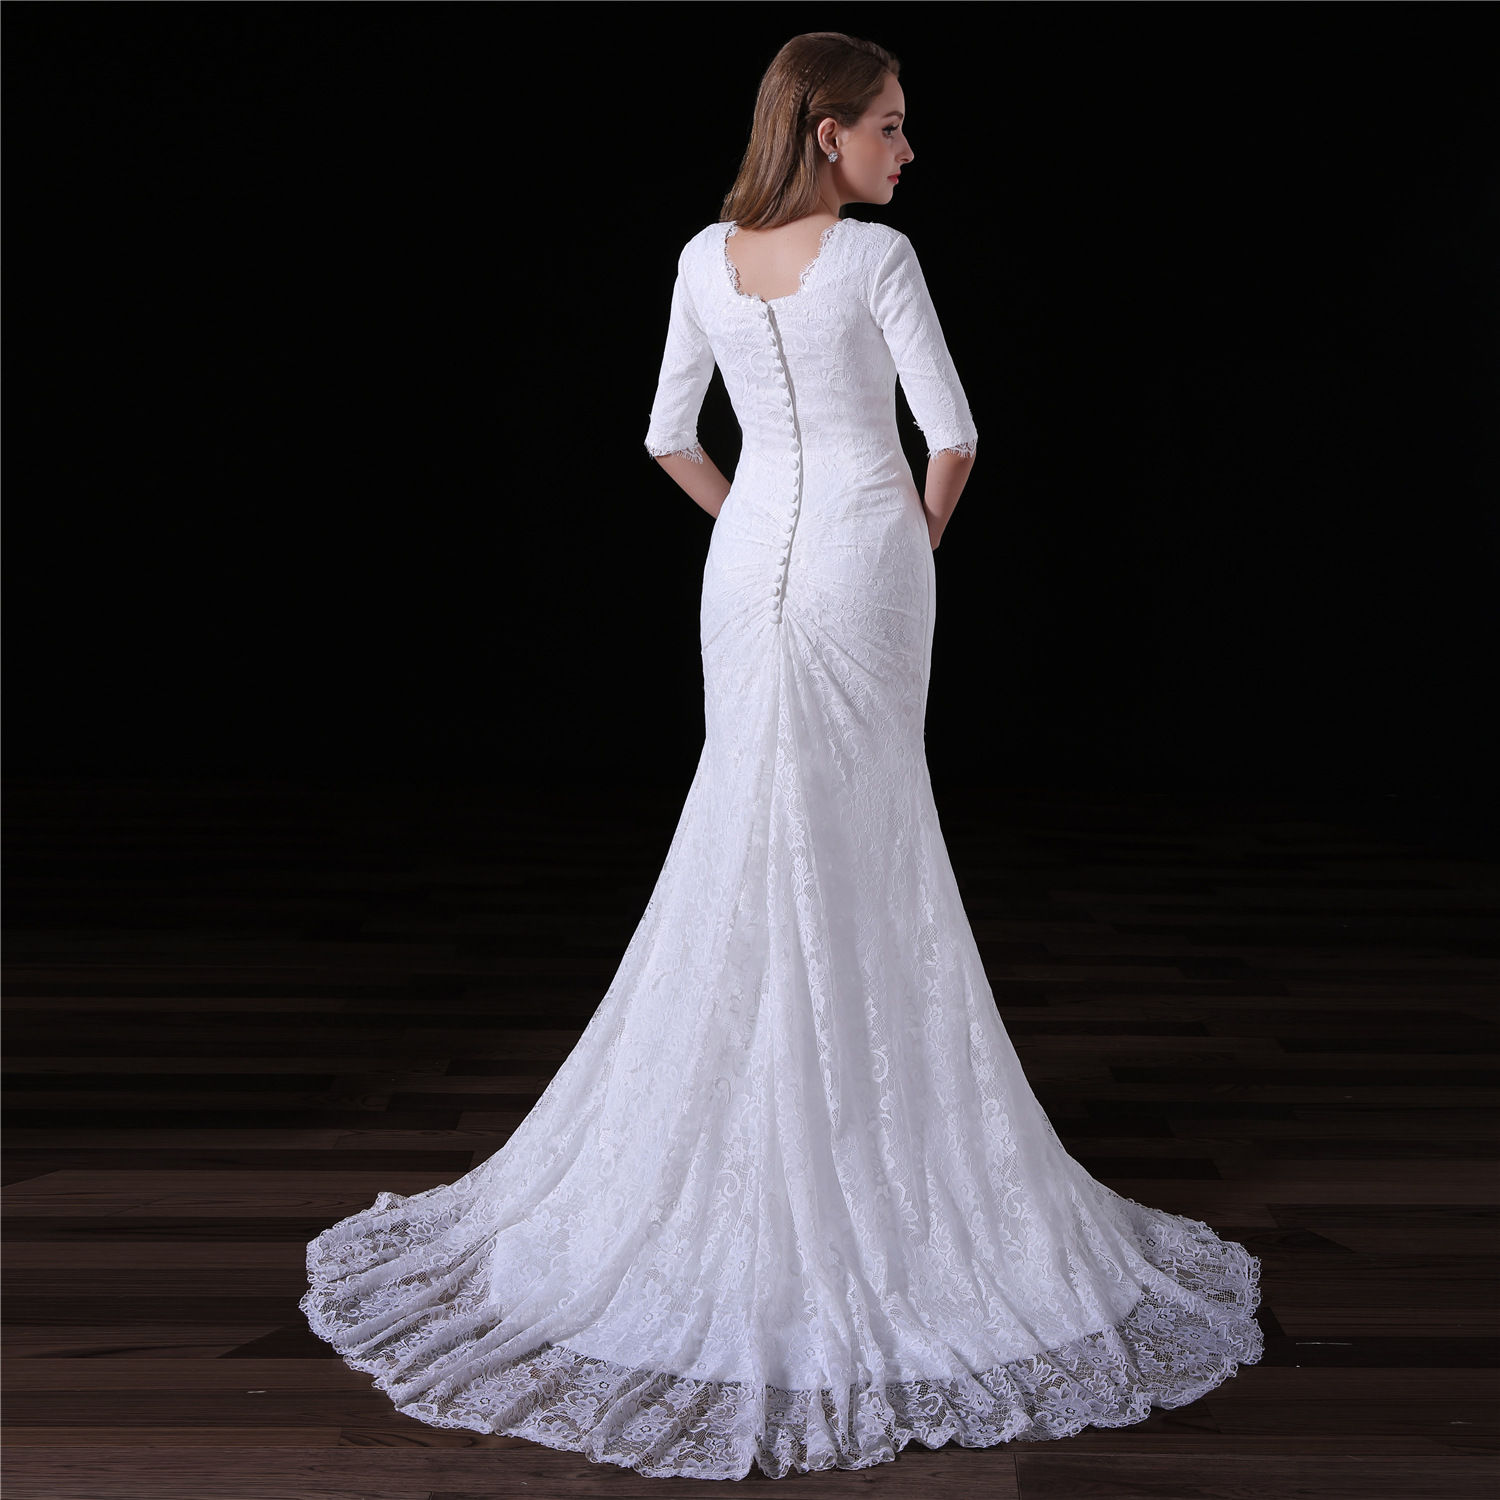 Simple Mermaid Wedding Dress Lace Bridal Gown With Train